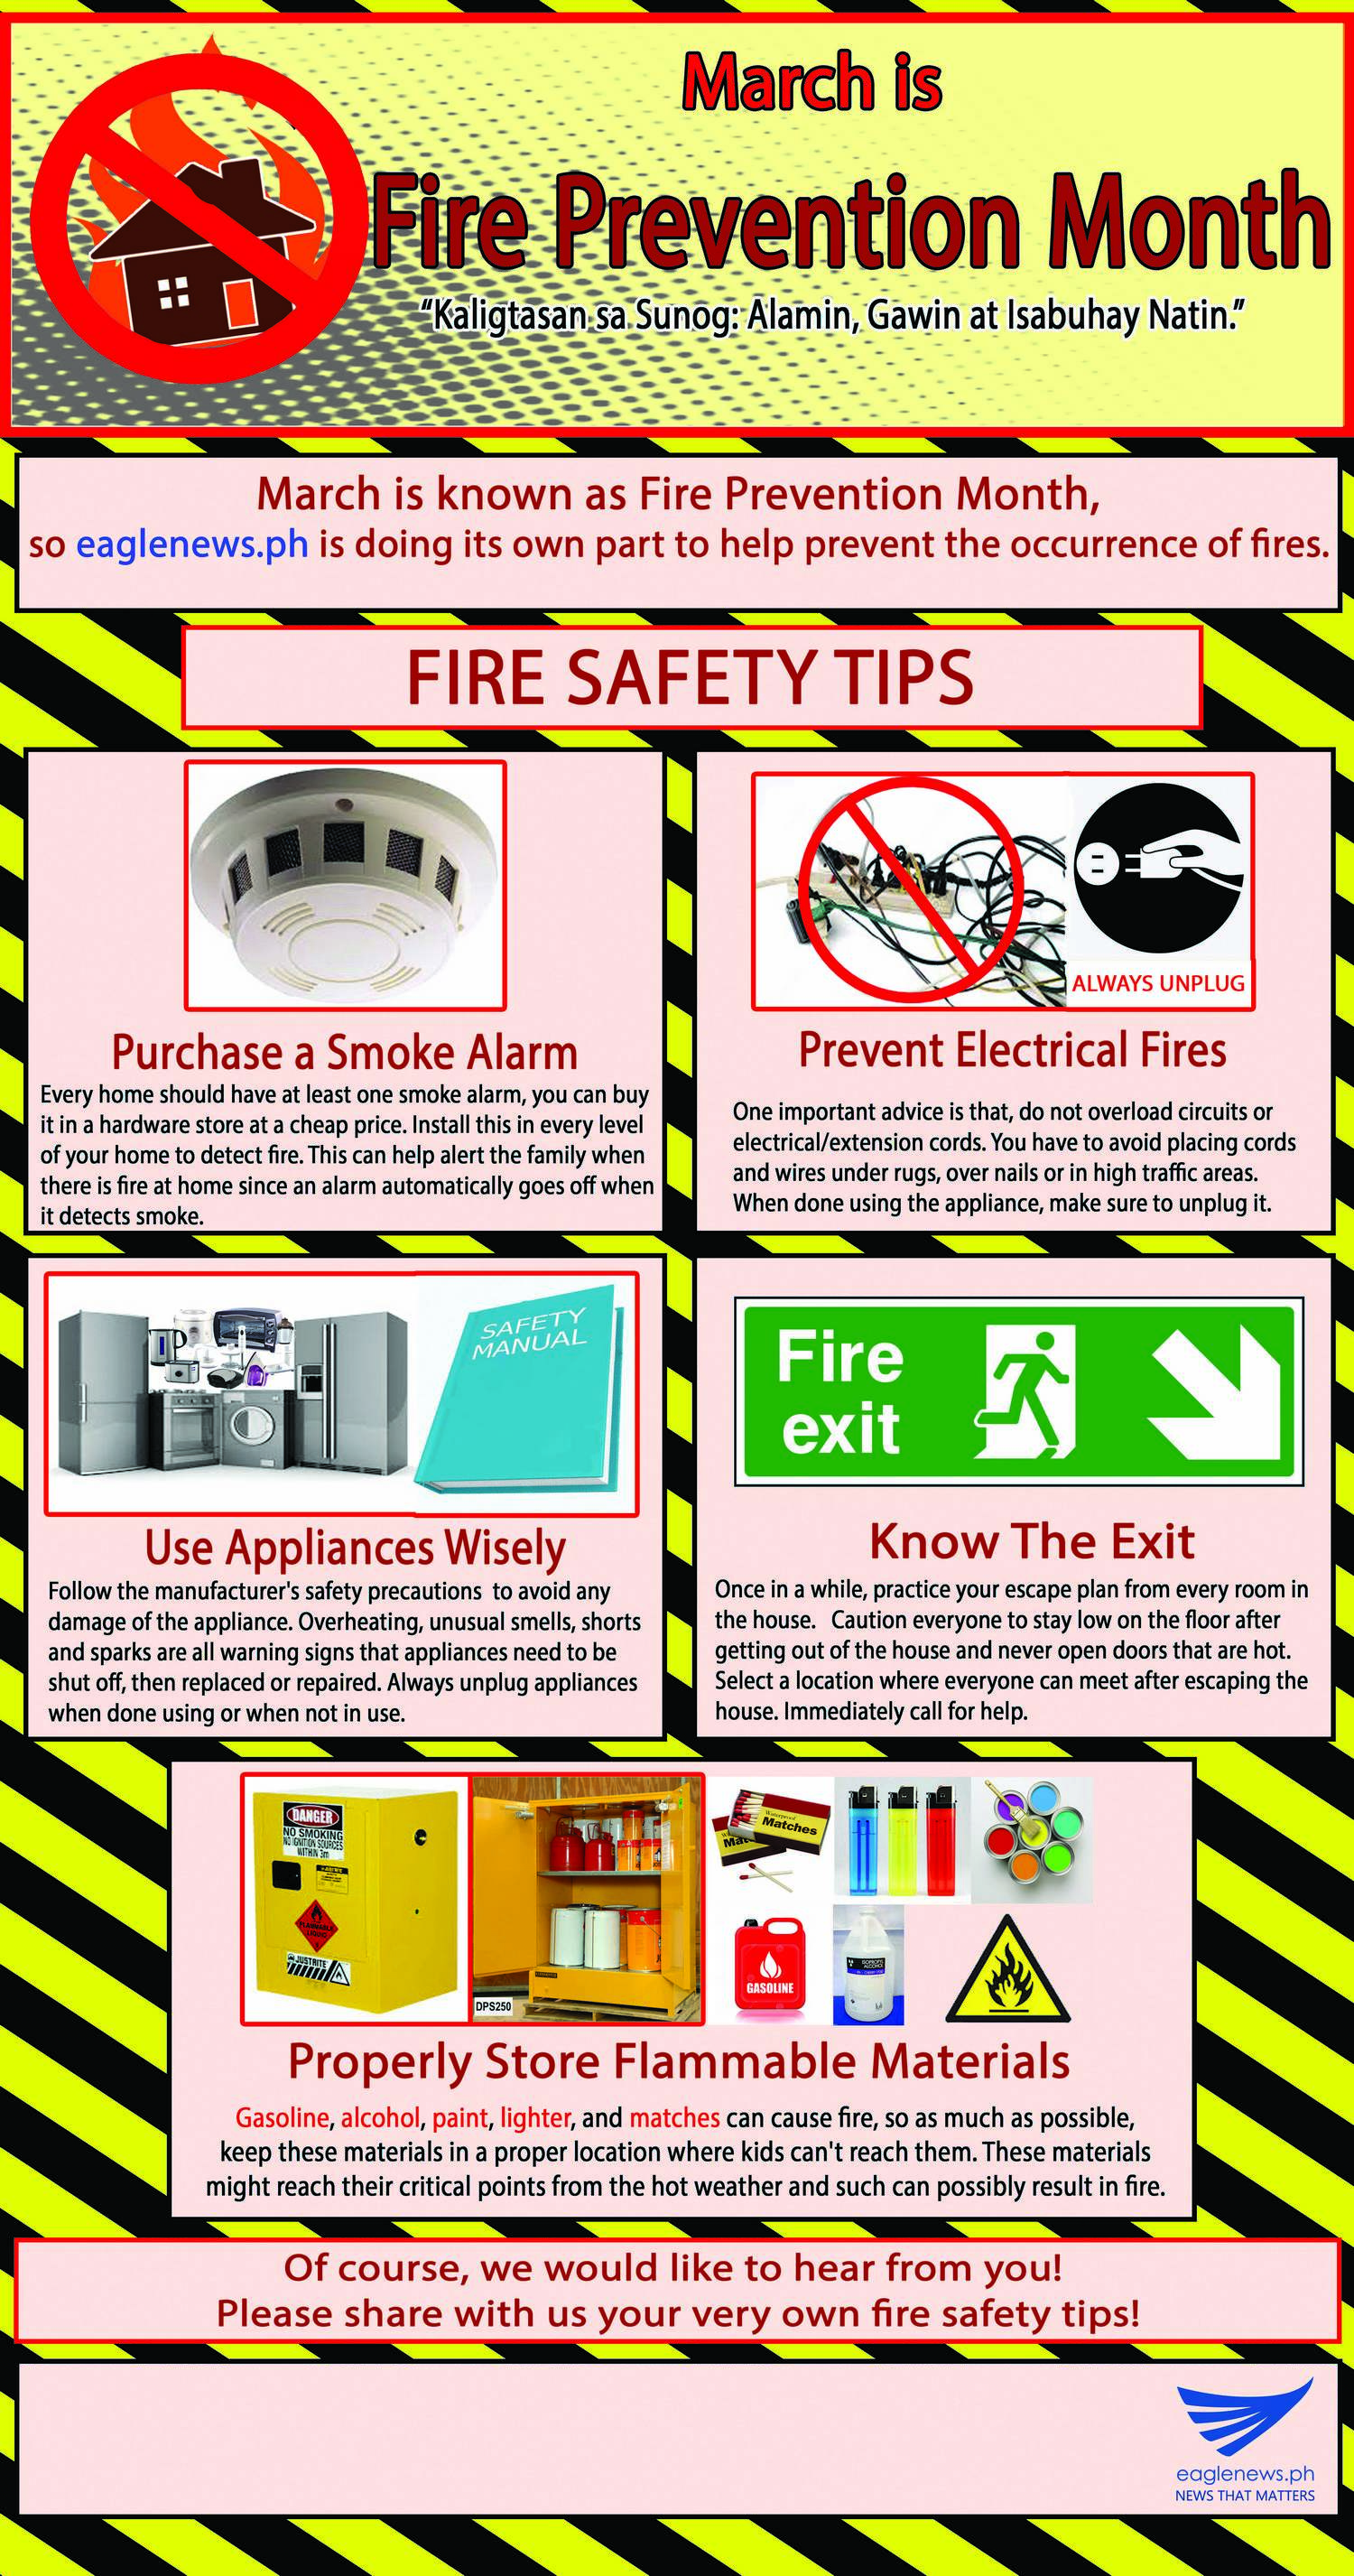 fire safety essay Unlike most editing & proofreading services, we edit for everything: grammar, spelling, punctuation, idea flow, sentence structure, & more get started now.